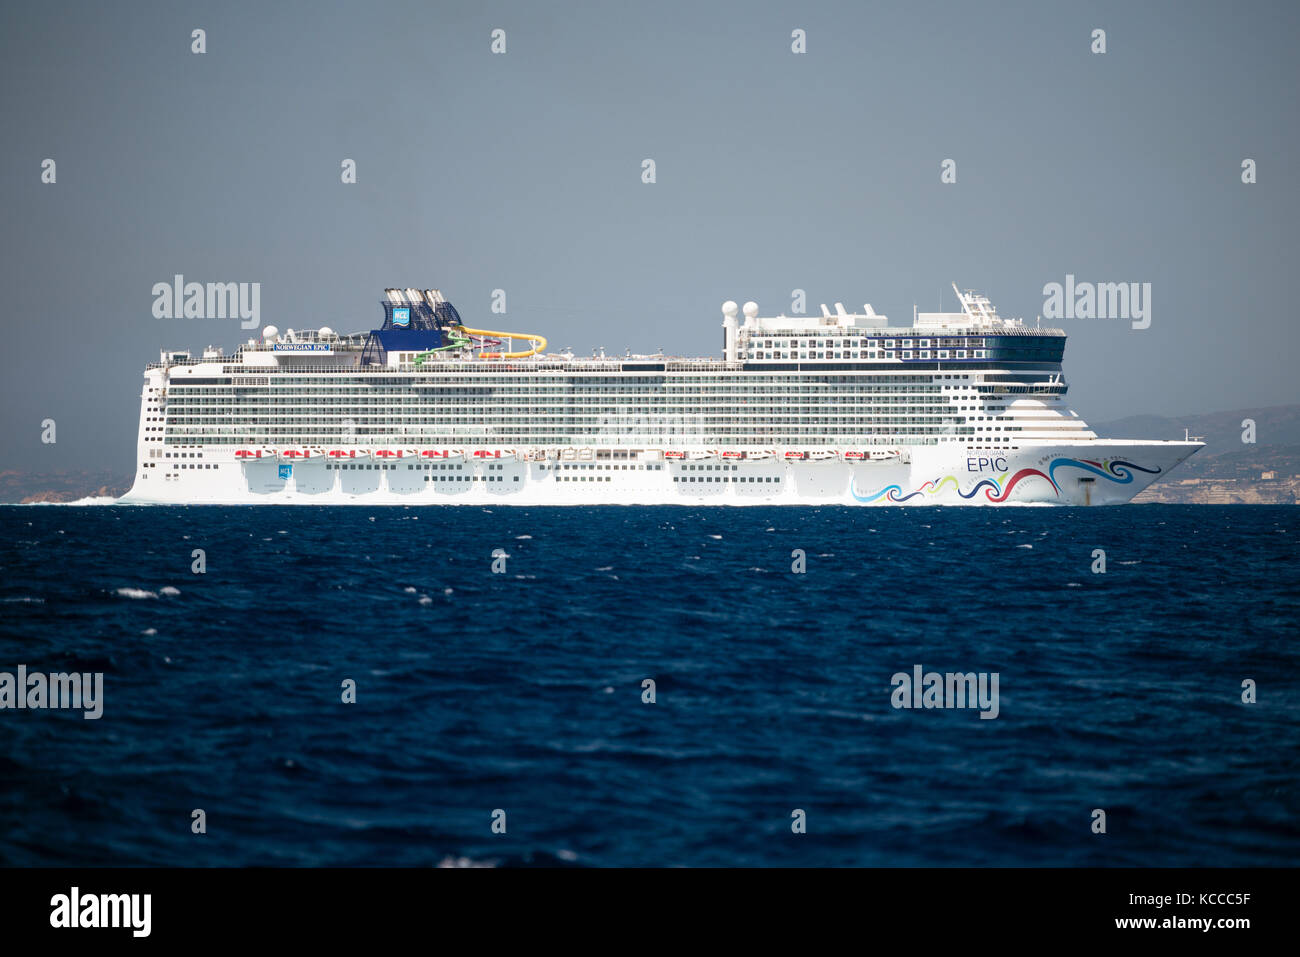 TYRRHENIAN SEA, FRANCE - AUG 28, 2017: Beautiful cruise ship Norwegian Epic on voyage in between islands of Sardinia - Stock Image